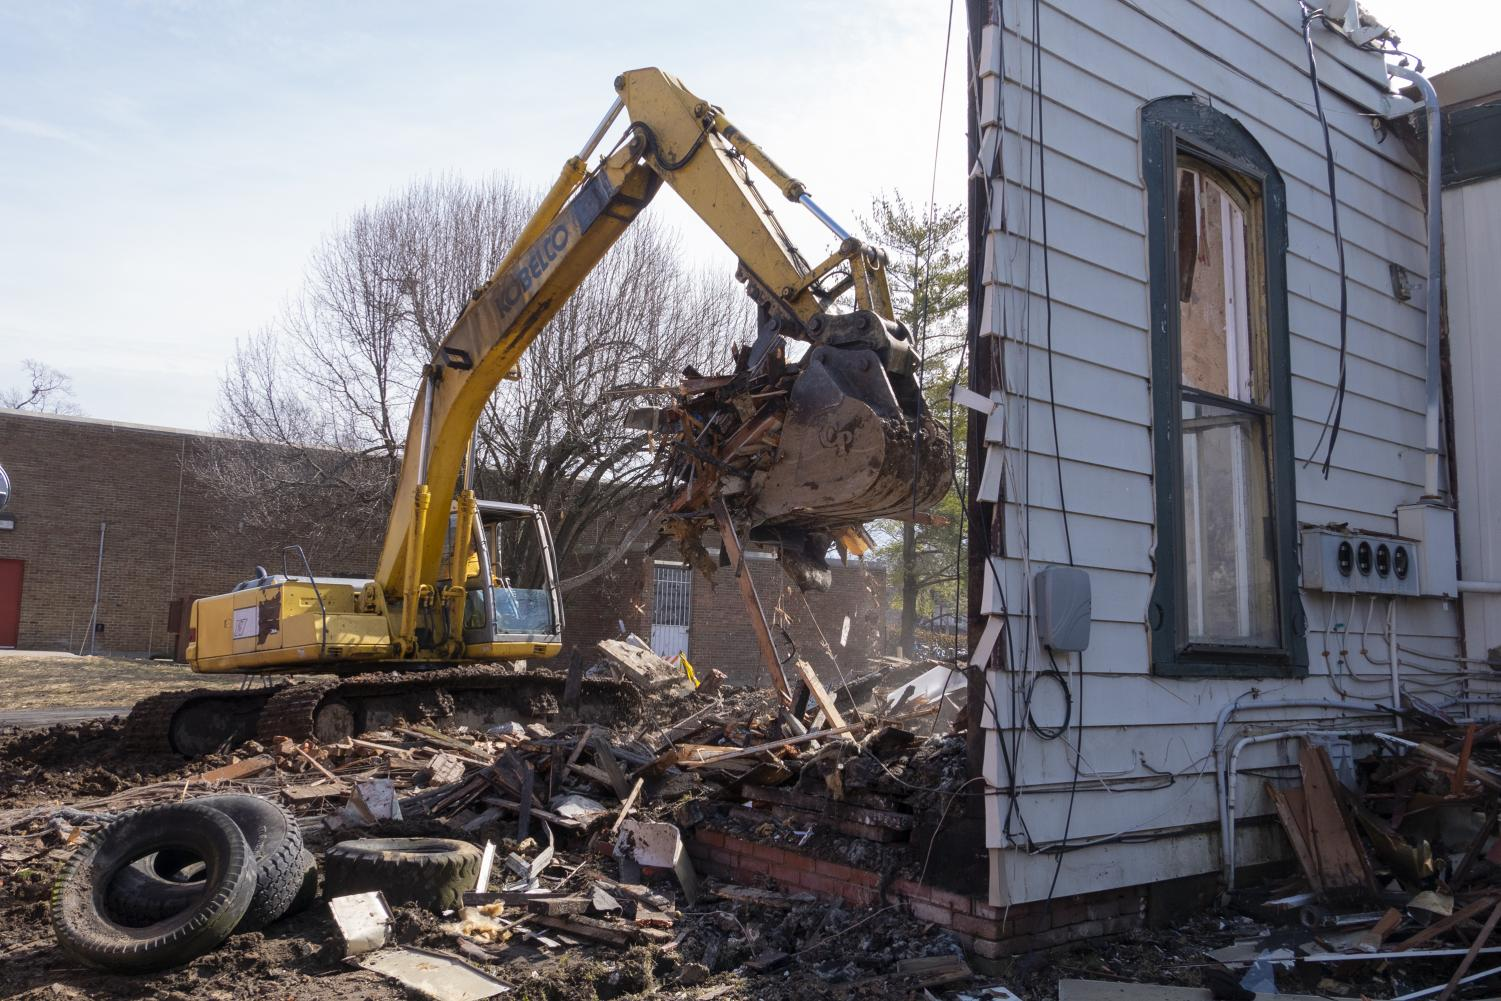 Kevin Wheetley, owner of The Wheetley Company, operates a track hoe on Feb. 21, 2019. Wheetley removes the remains of an apartment building that burnt down in November 2018.